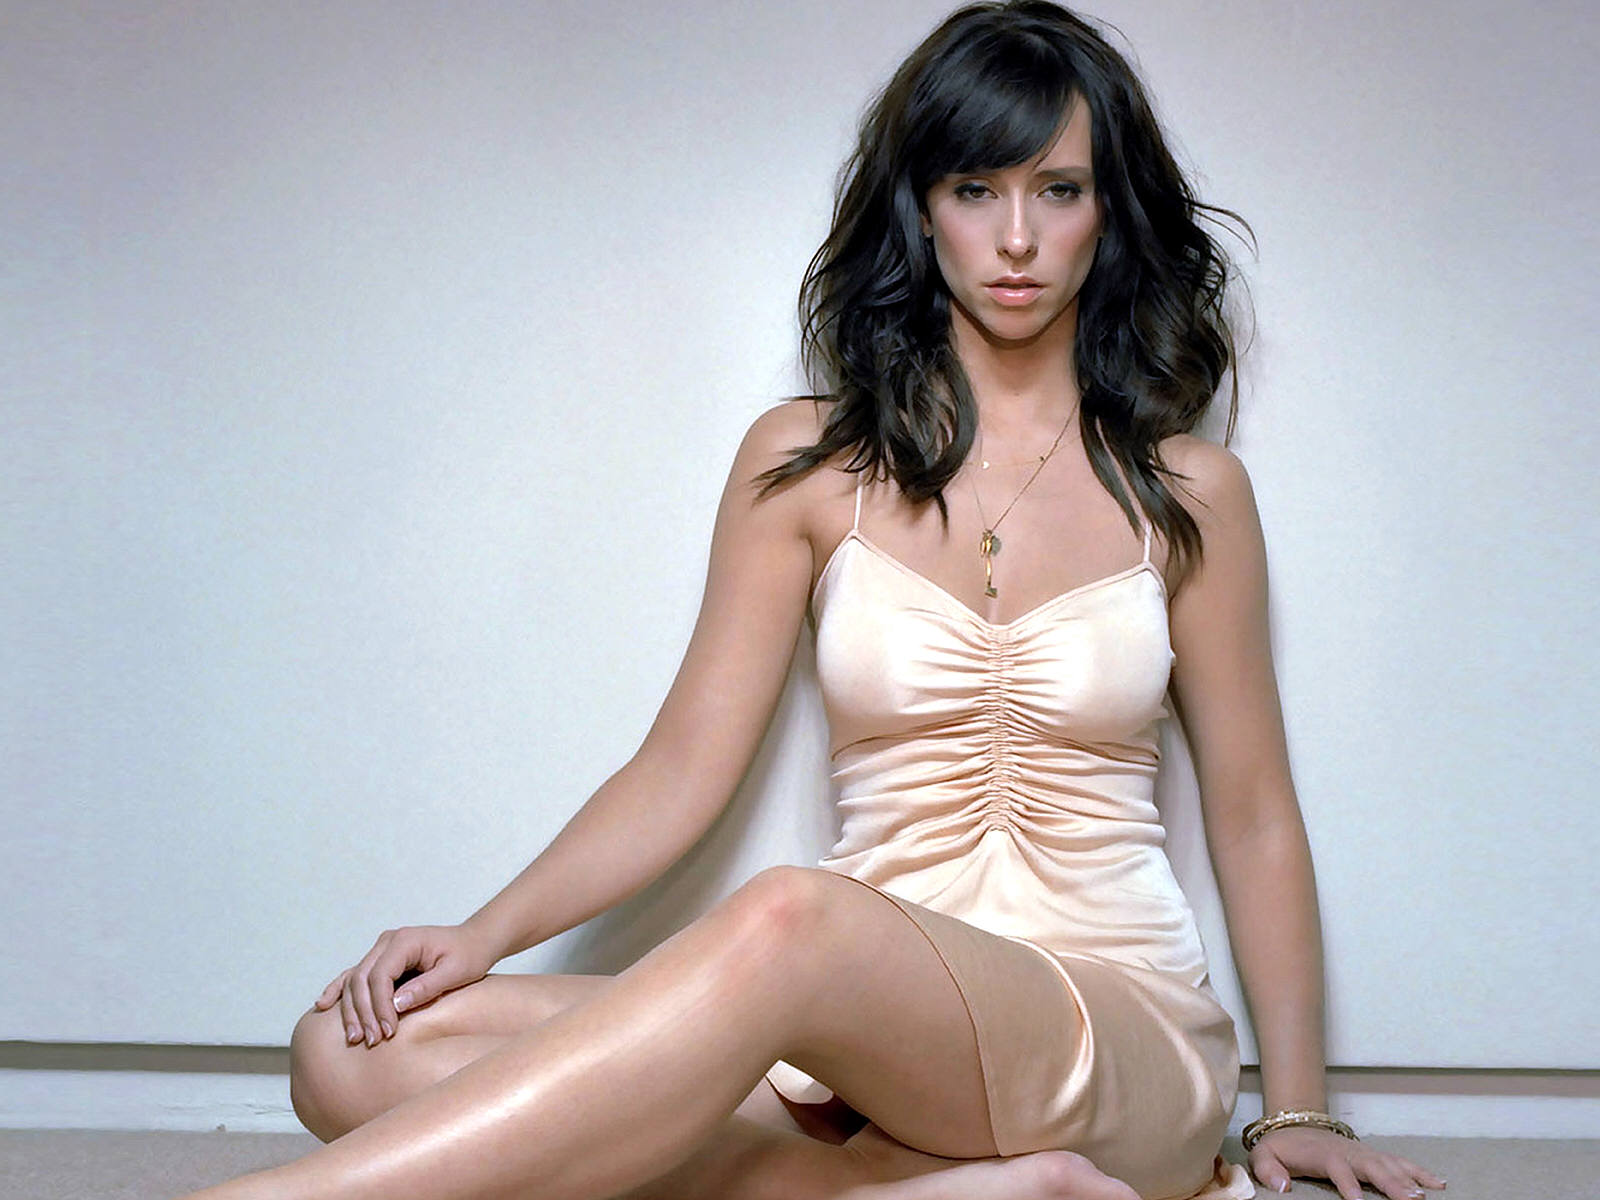 Jennifer Love Hewitt download free wallpapers